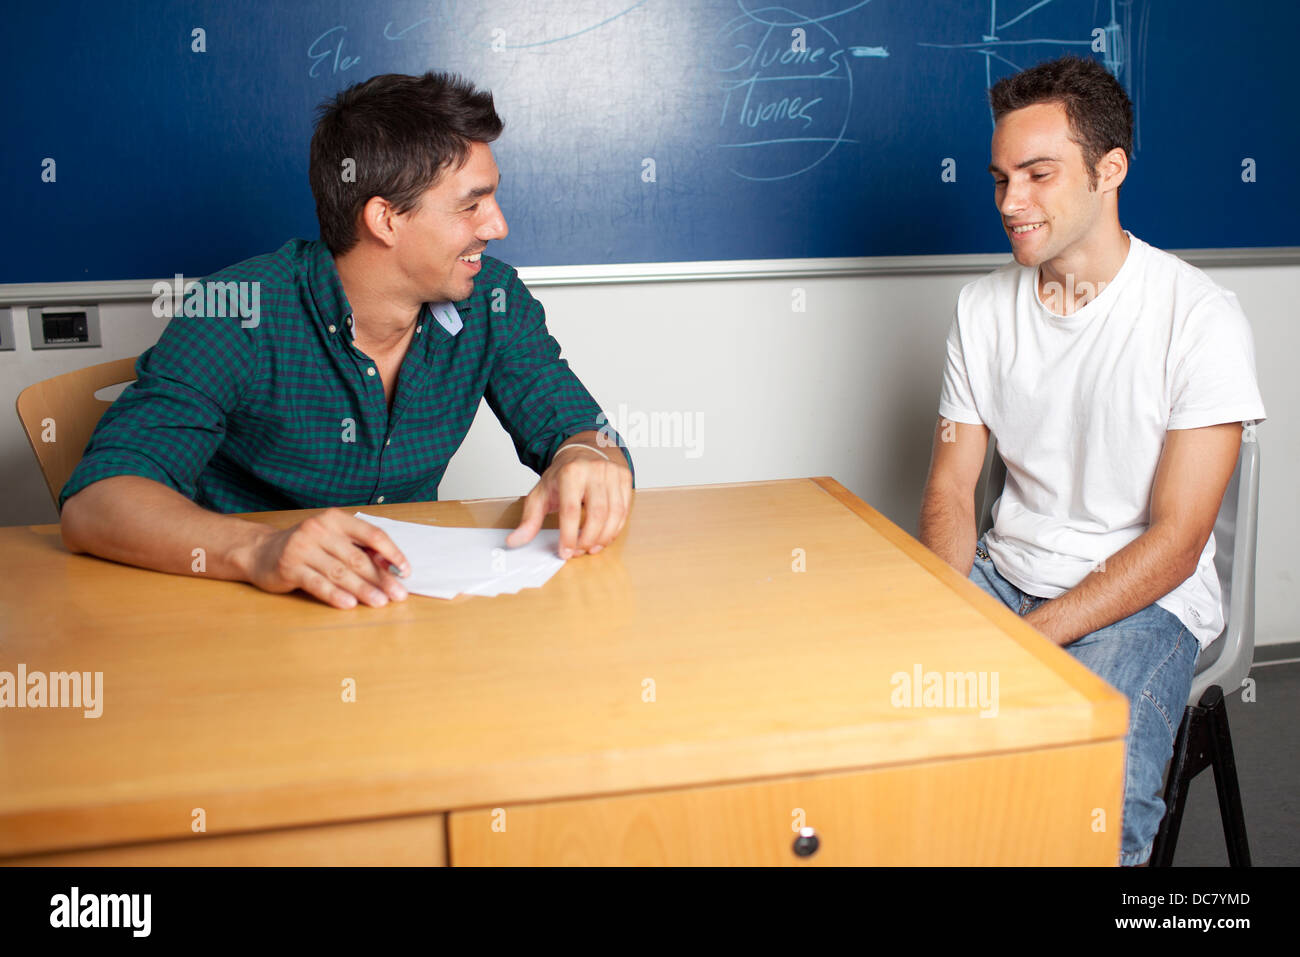 appointment during office hours at university - Stock Image